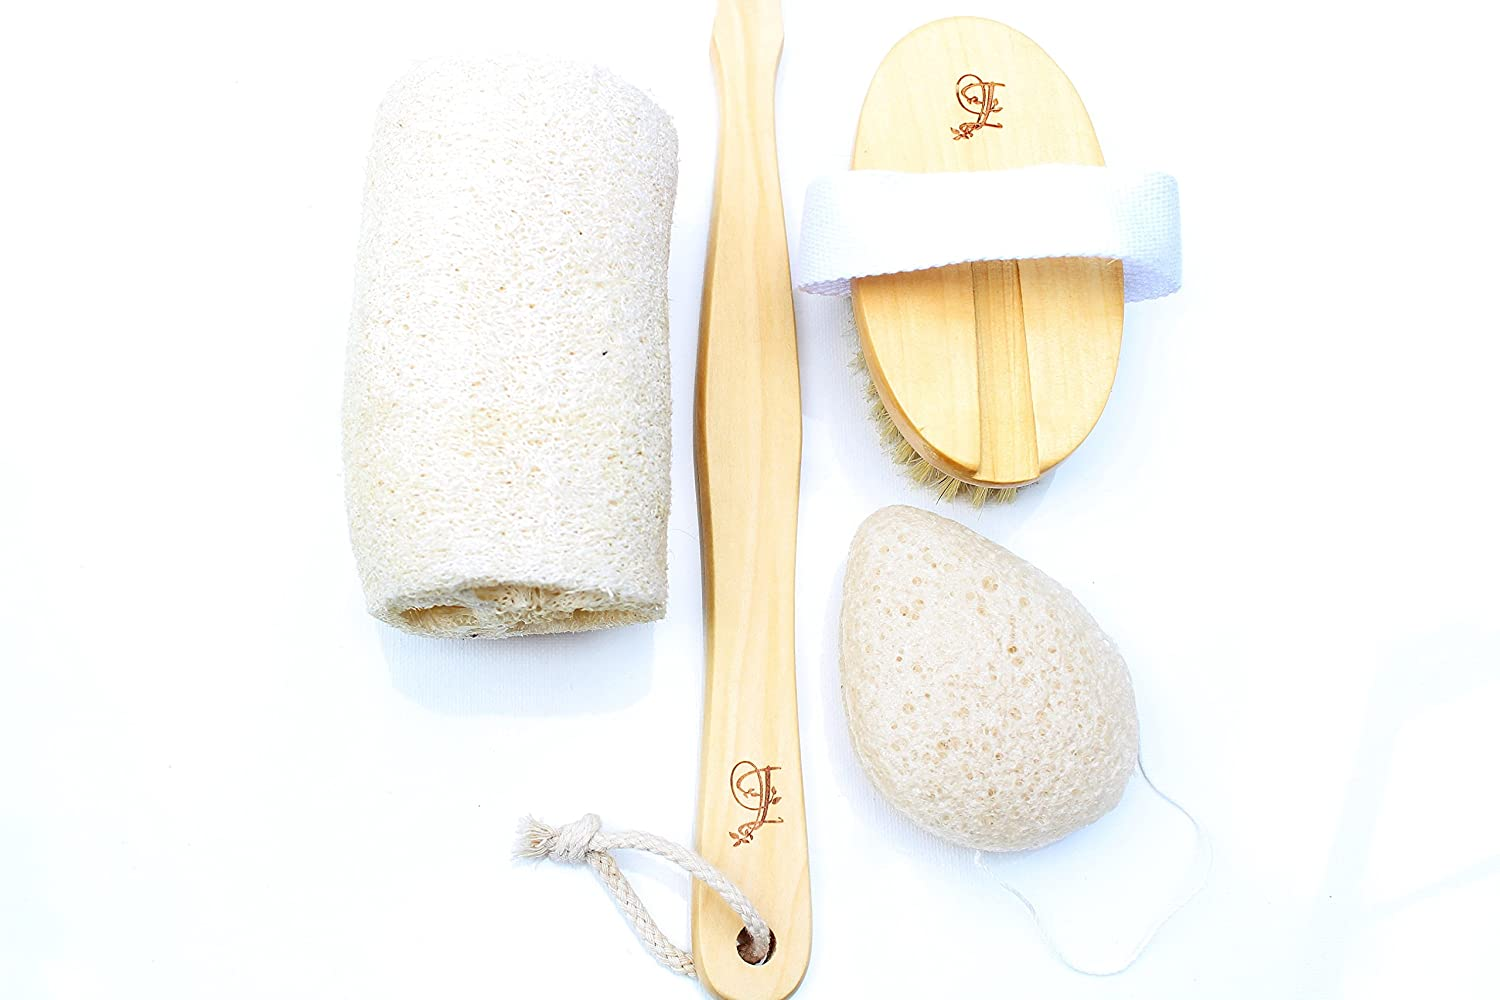 Natural Boar Bristle Body Dry Brush and Facial Exfoliating Set with Konjac & Loofah, Premium Dry Brushing Body Brush for Complete Skin Exfoliation by Ive Beauty Collection (White) i-101